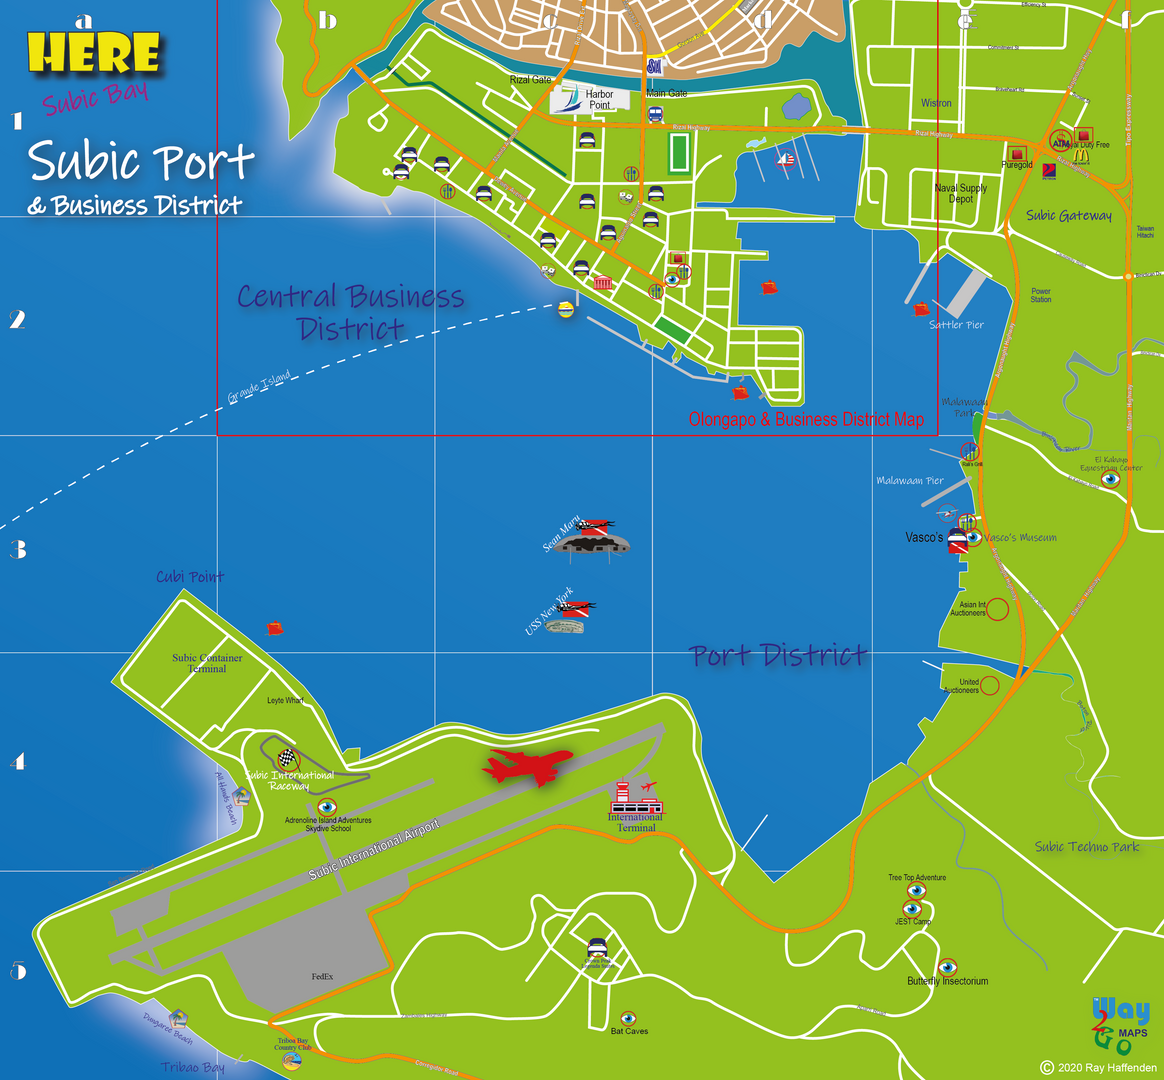 Here-Subic Bay Port District map 2020.pn